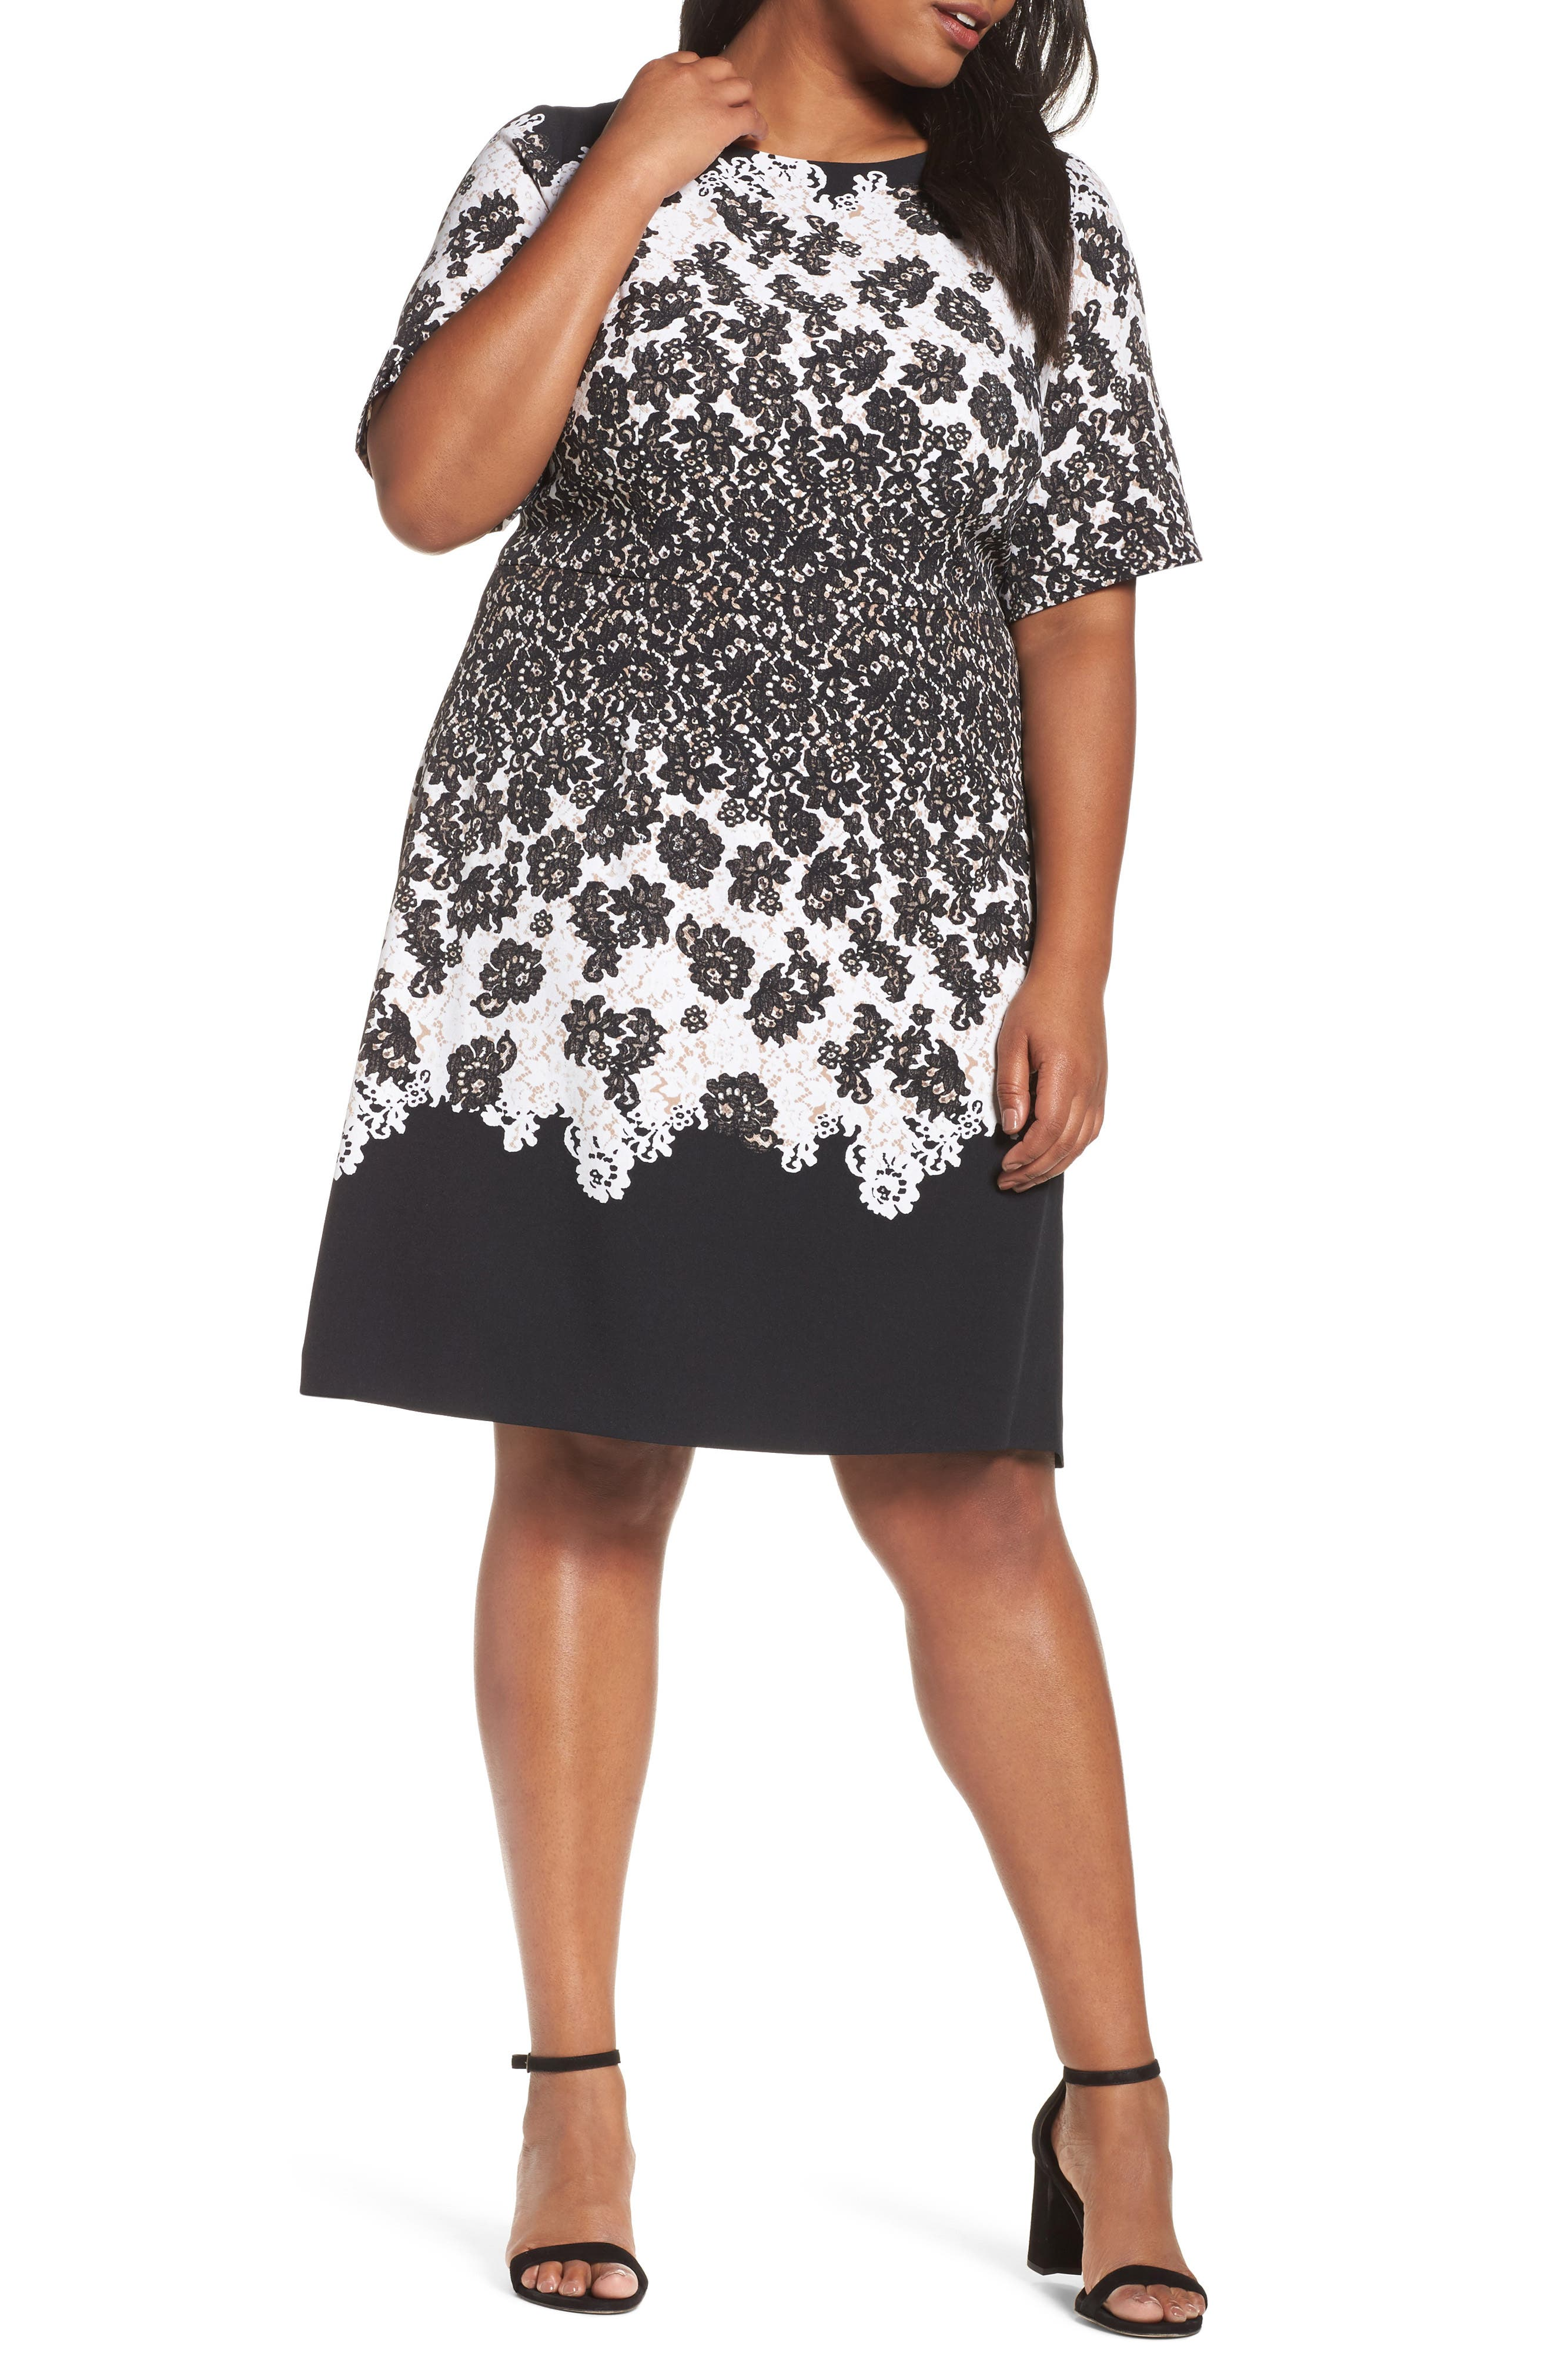 Main Image - Adrianna Papell Lace Print Fit & Flare Dress (Plus Size)